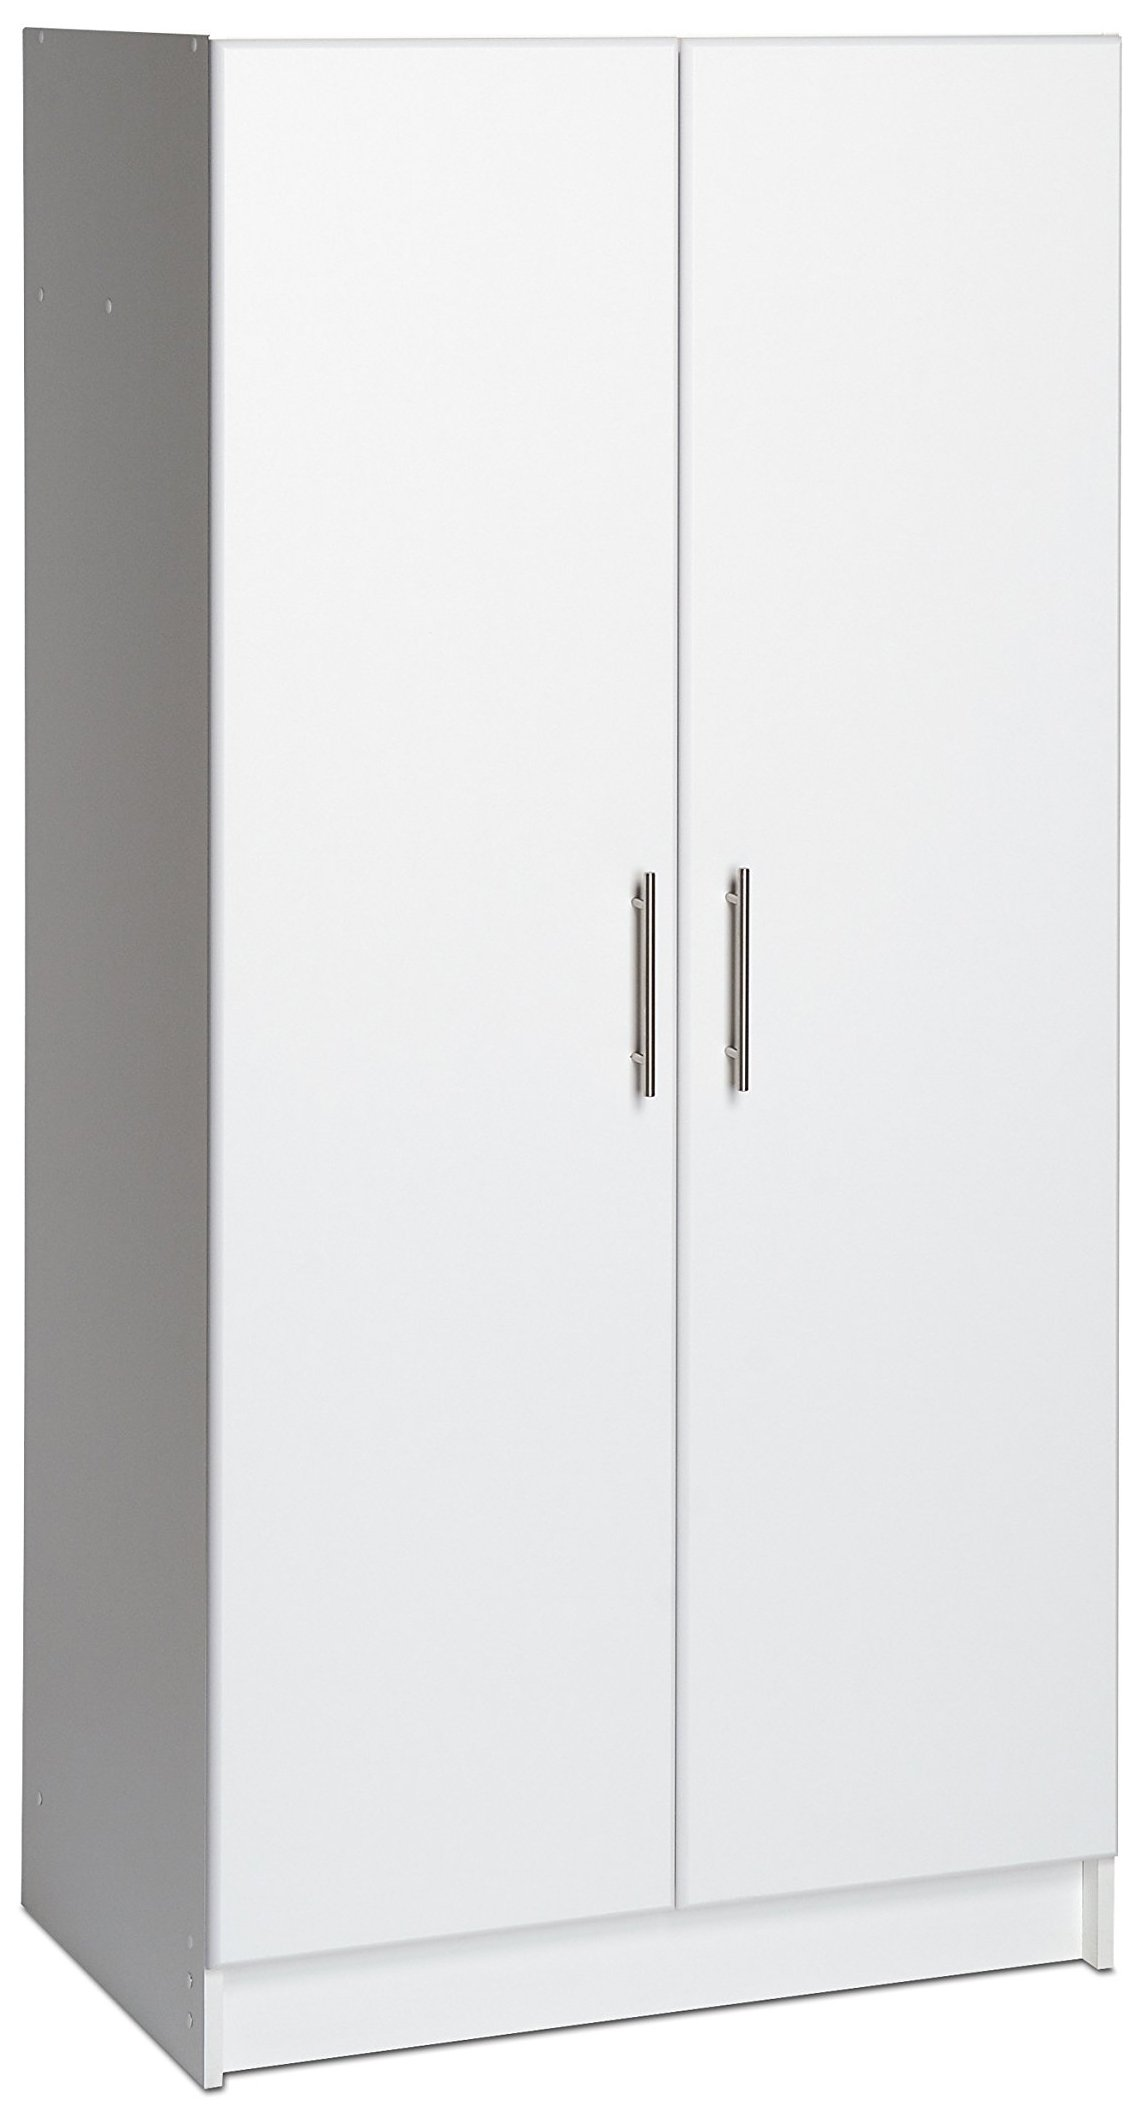 Elite 32'' Storage Cabinet, White by Prepac